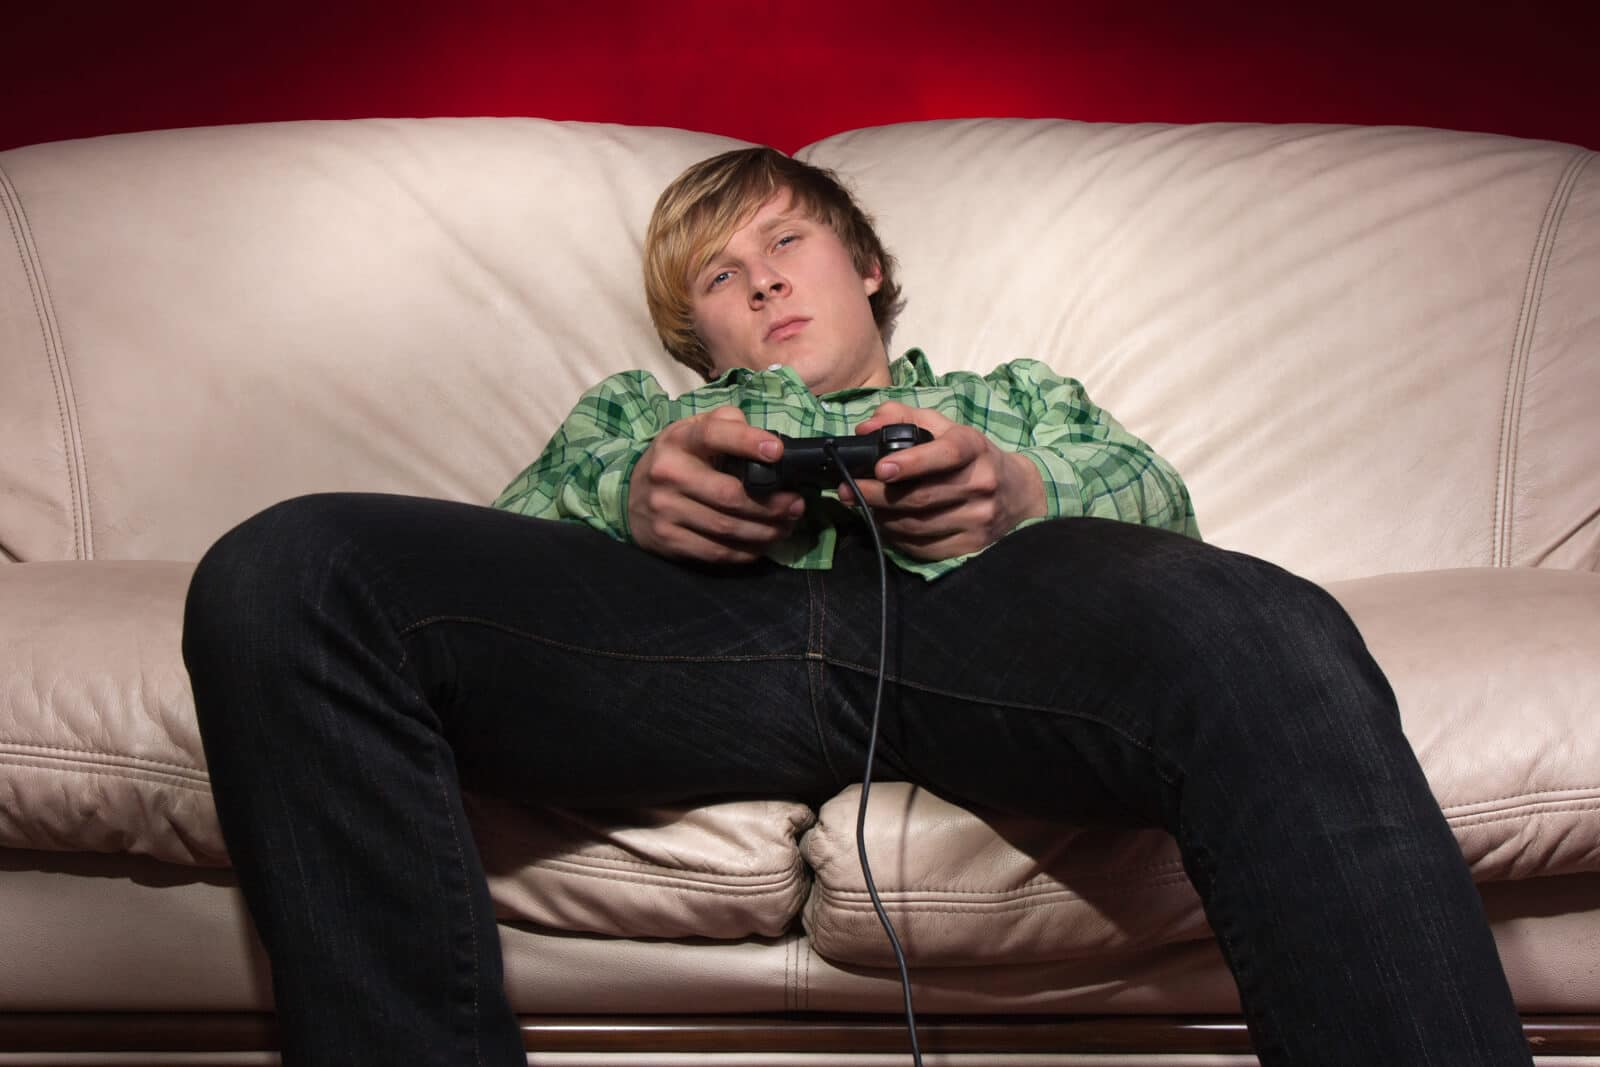 Thumnail photo of Video Game Addiction: What Are The Five Most Addictive Games?